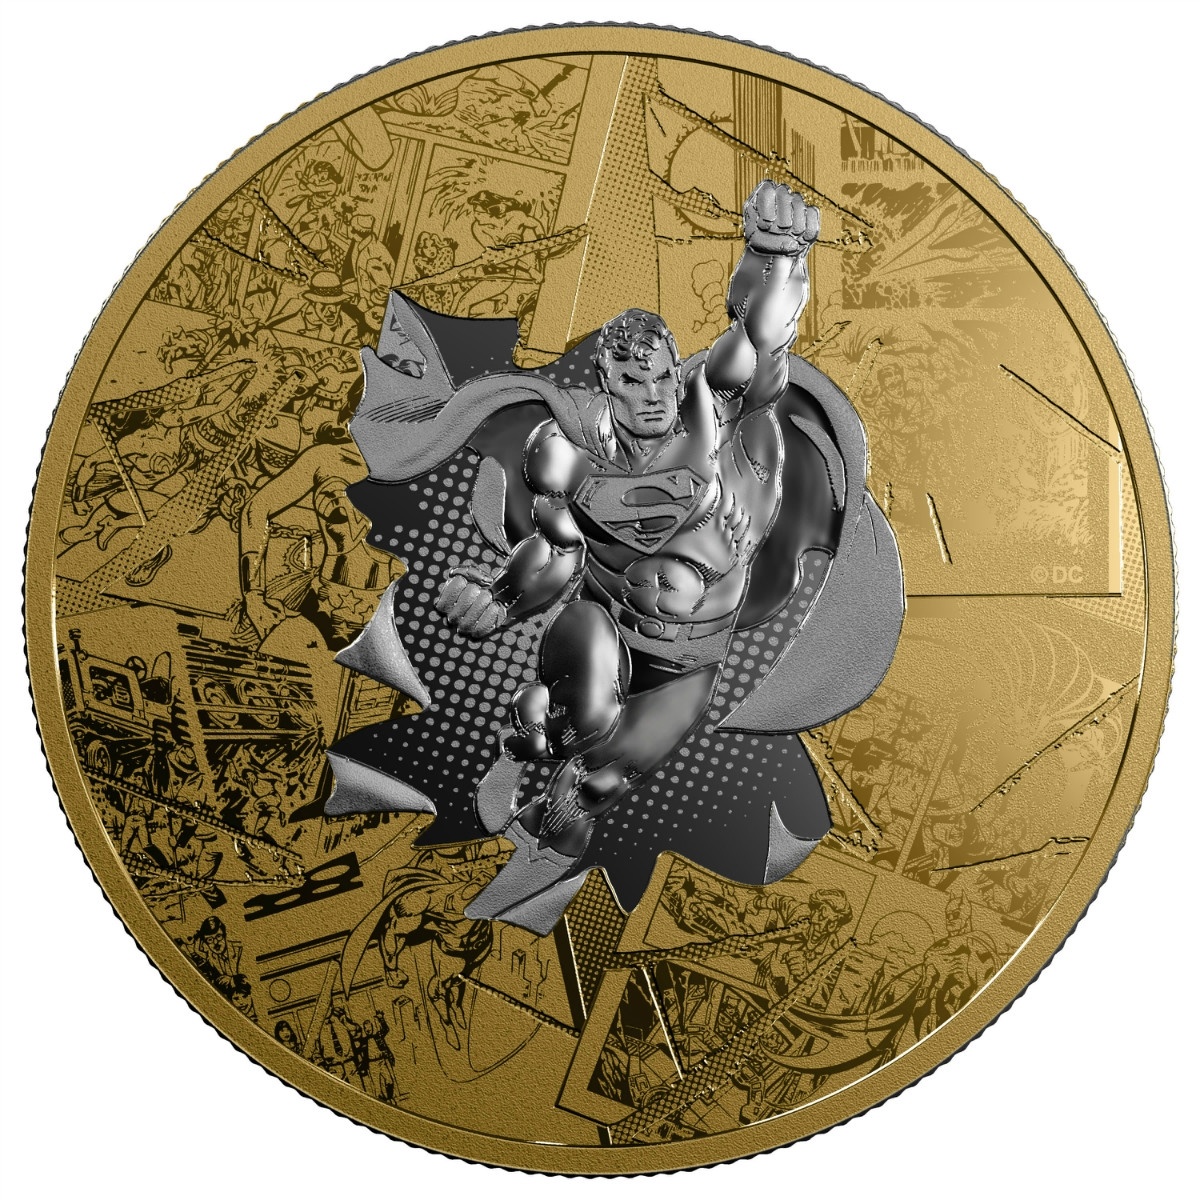 DC Comics Originals TM Fine Silver Coin 2015 Canada $10 Gauntlet